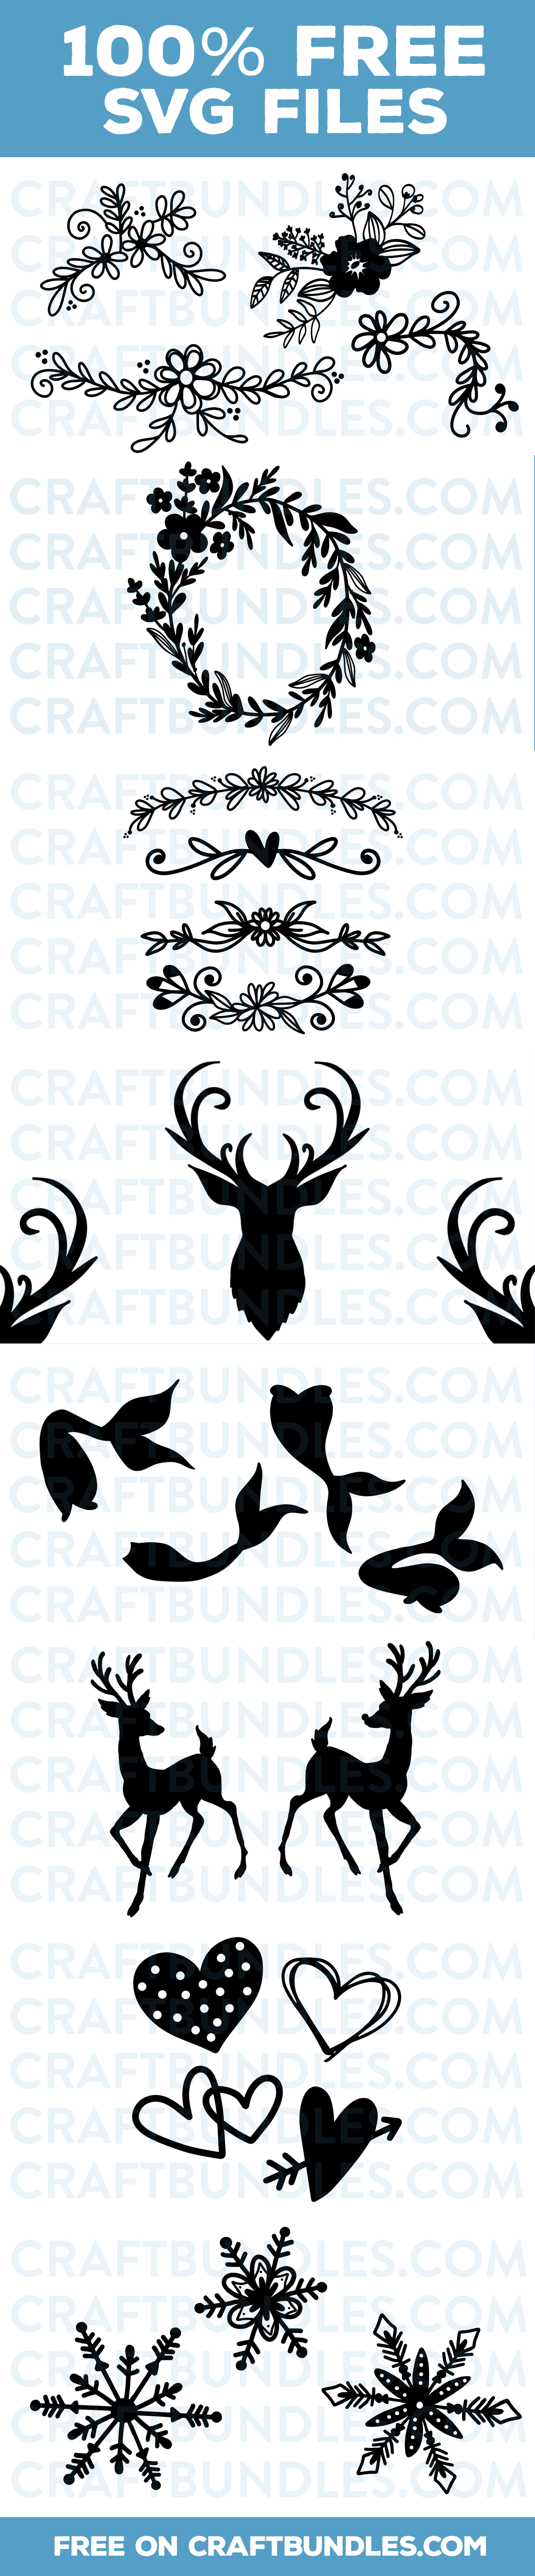 free svg files Embroidery patterns free, Embroidery